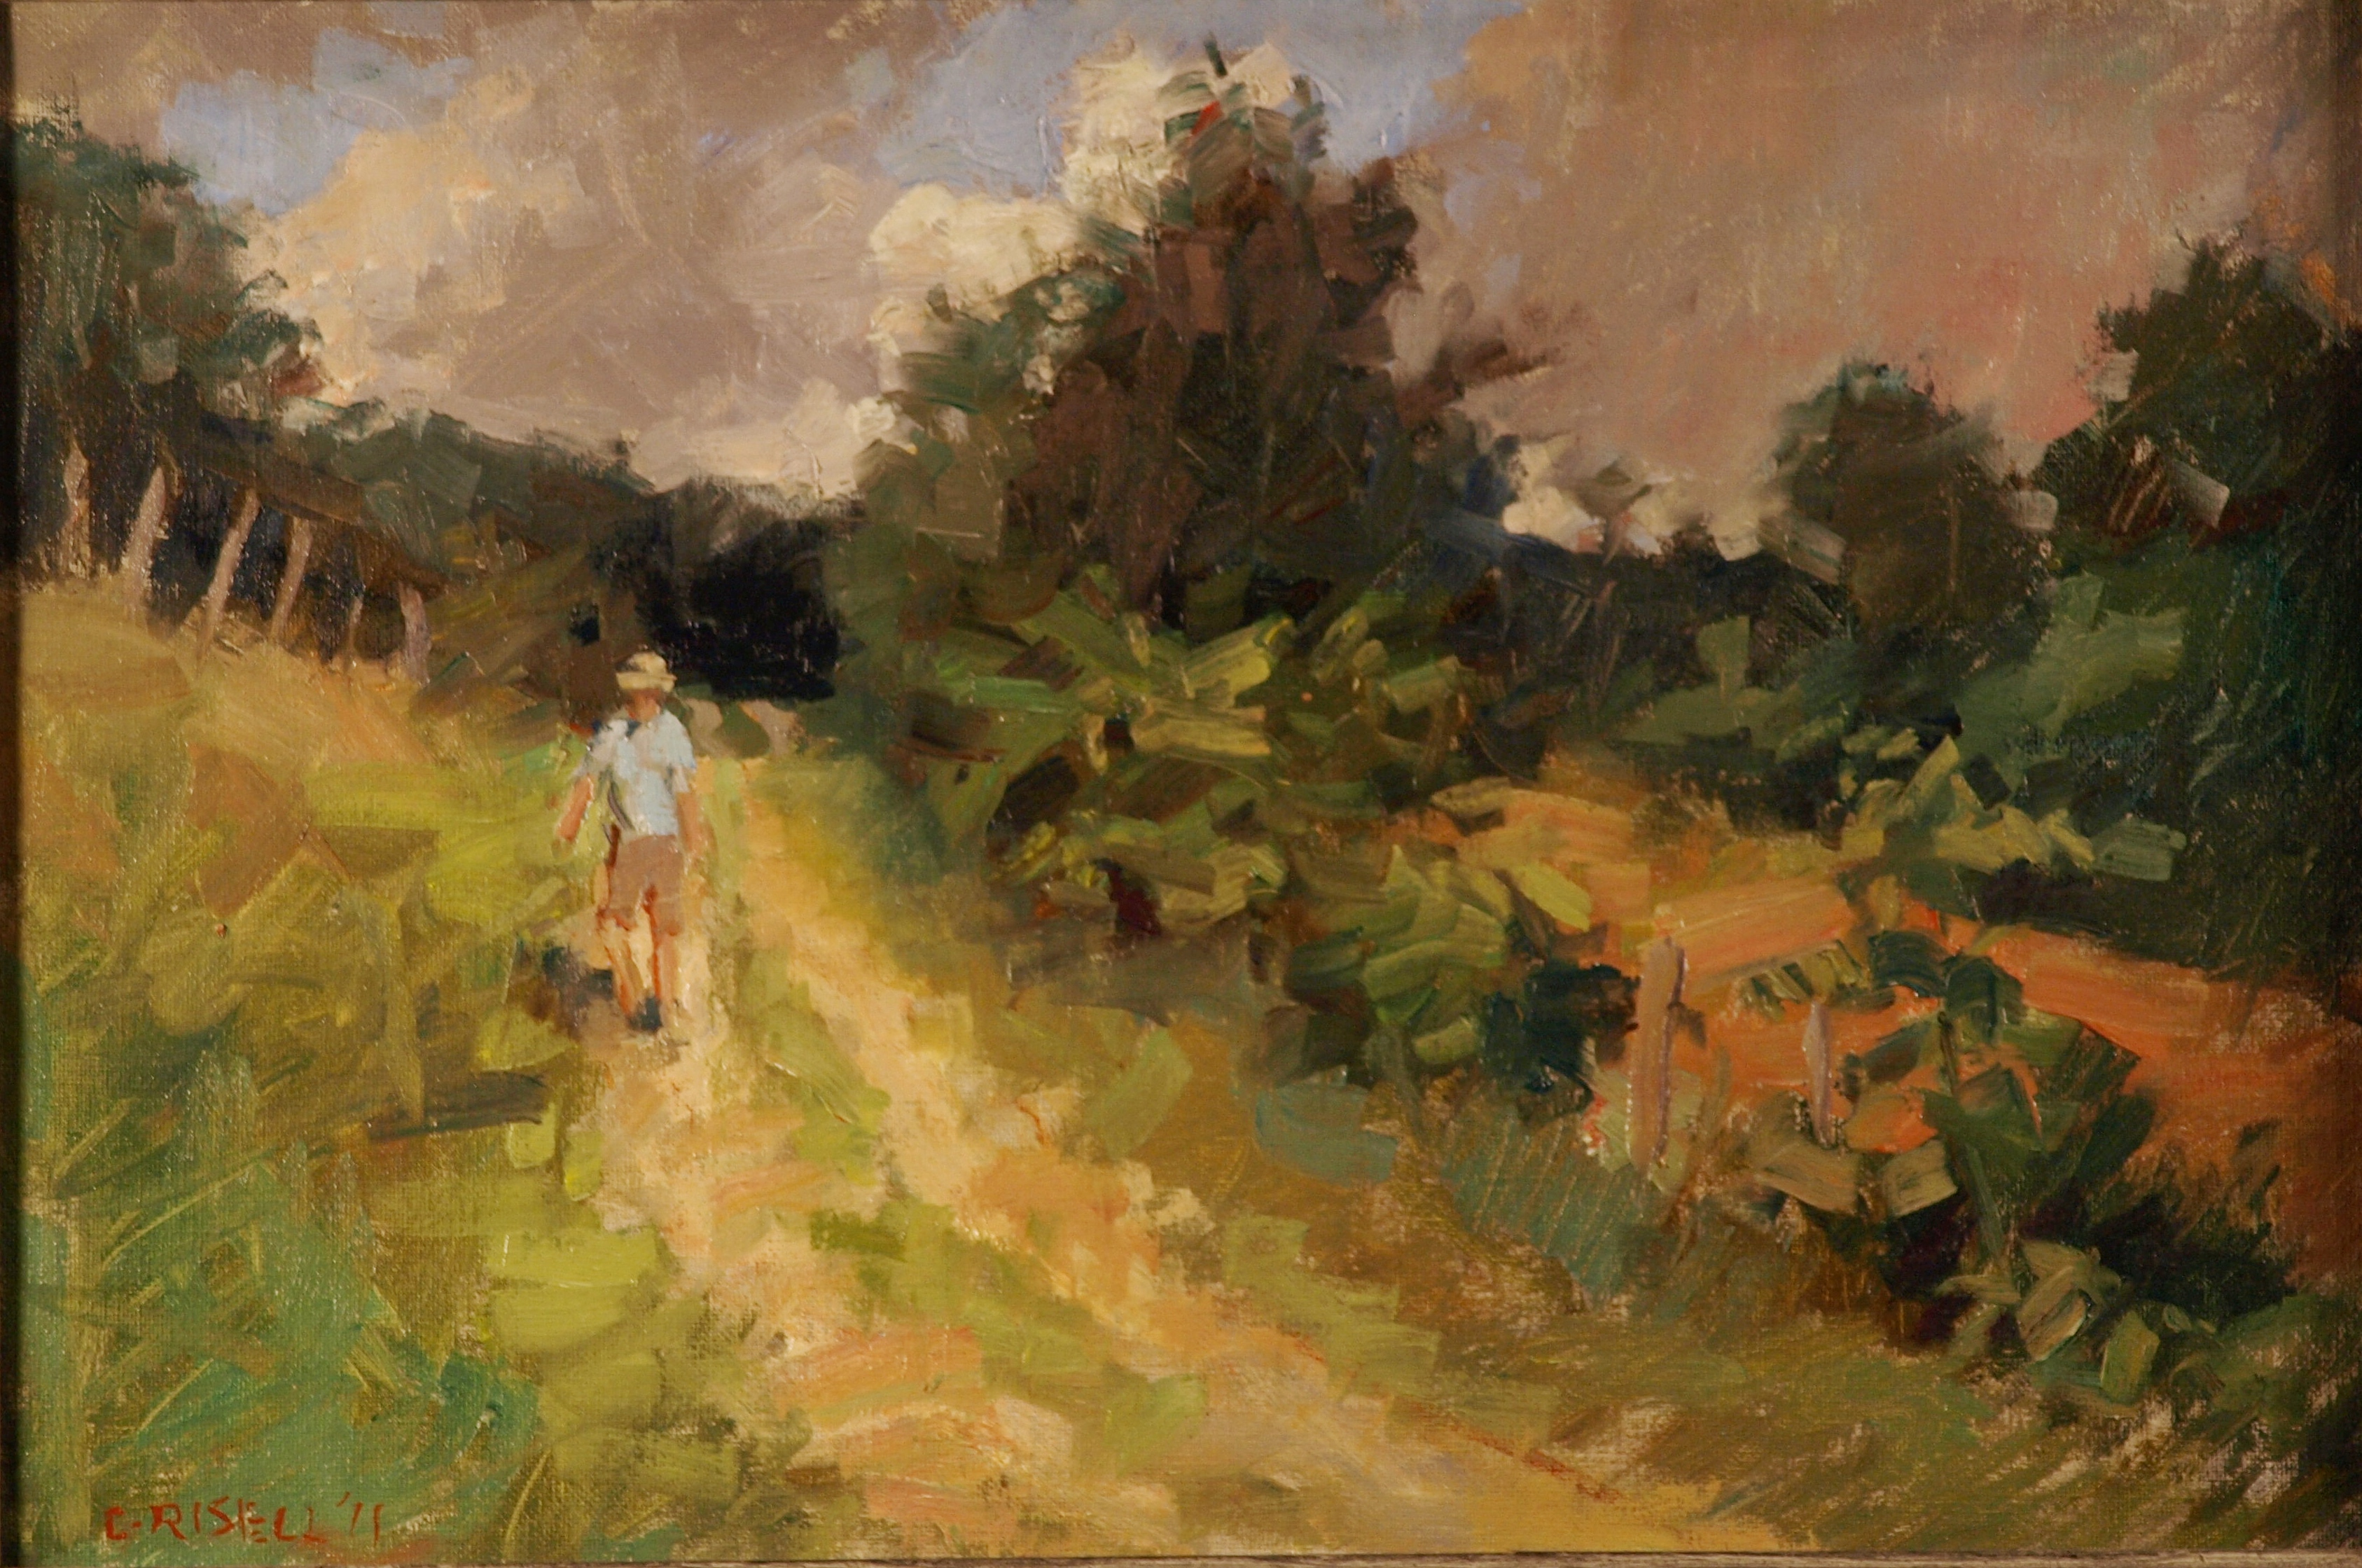 Path in Summer, Oil on Canvas on Panel, 12 x 18 Inches, by Susan Grisell, $275